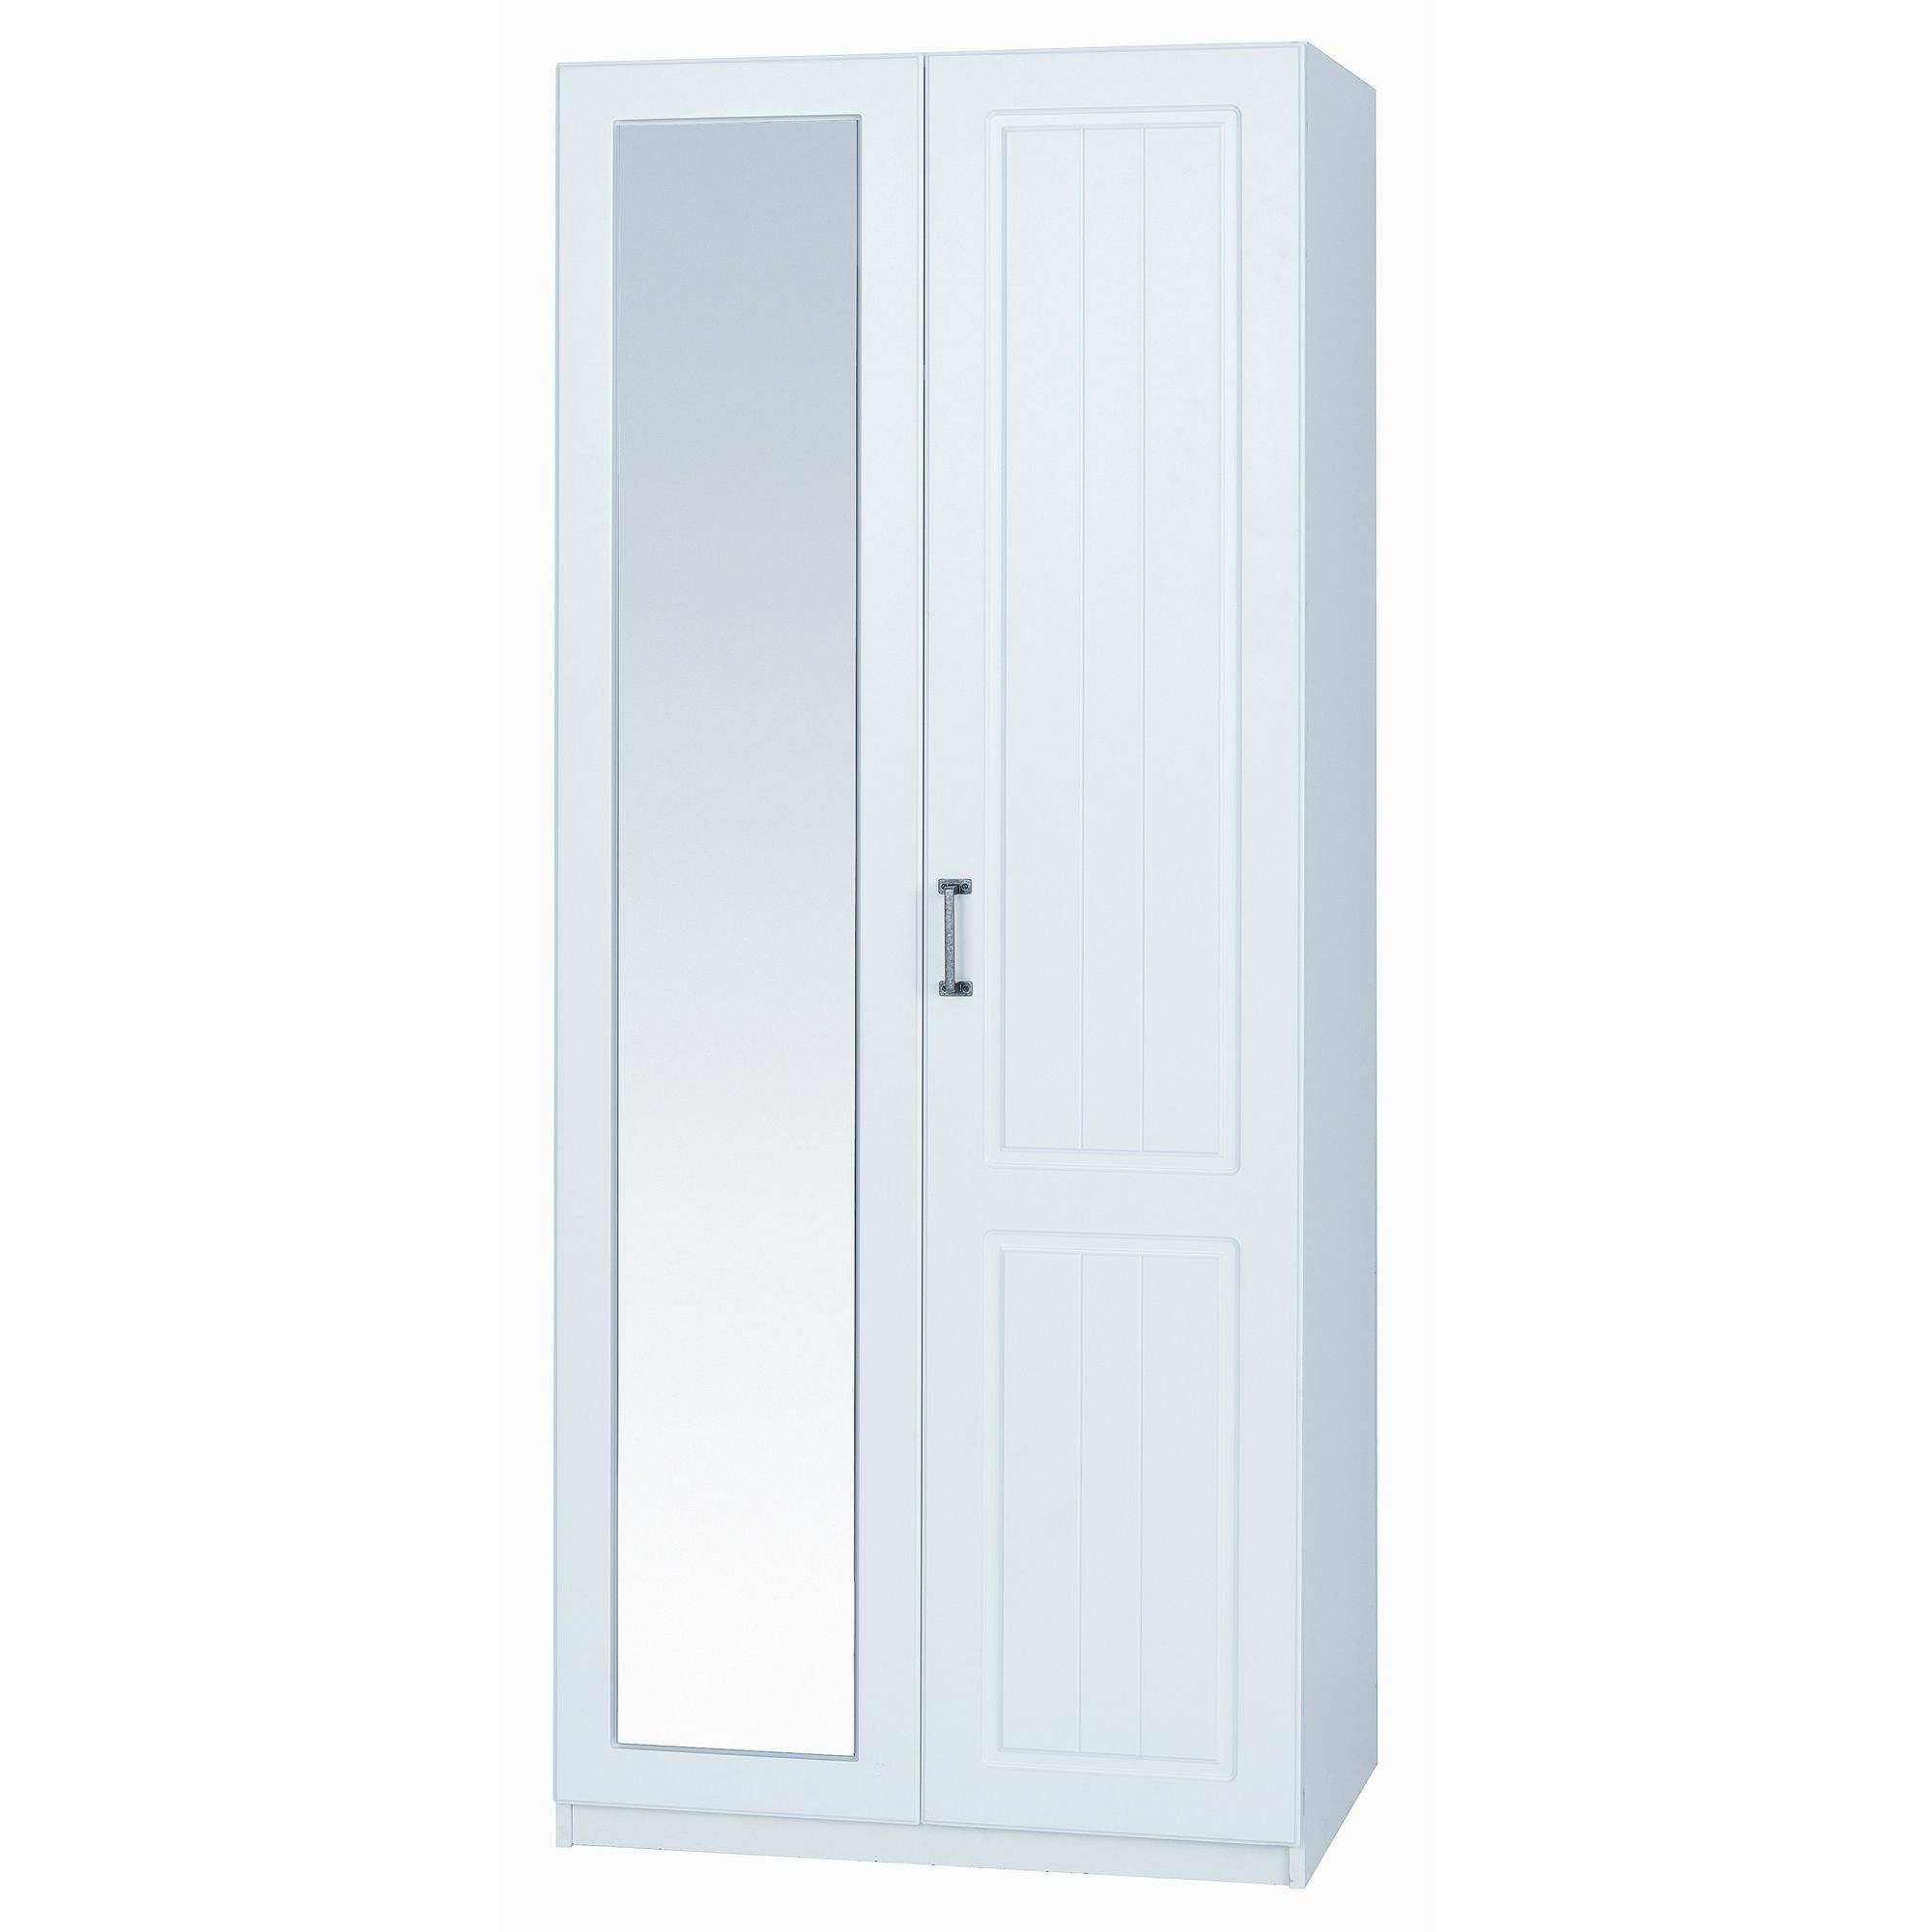 Alto Furniture Visualise Century Wardrobe with Mirror in Pearl White at Tesco Direct